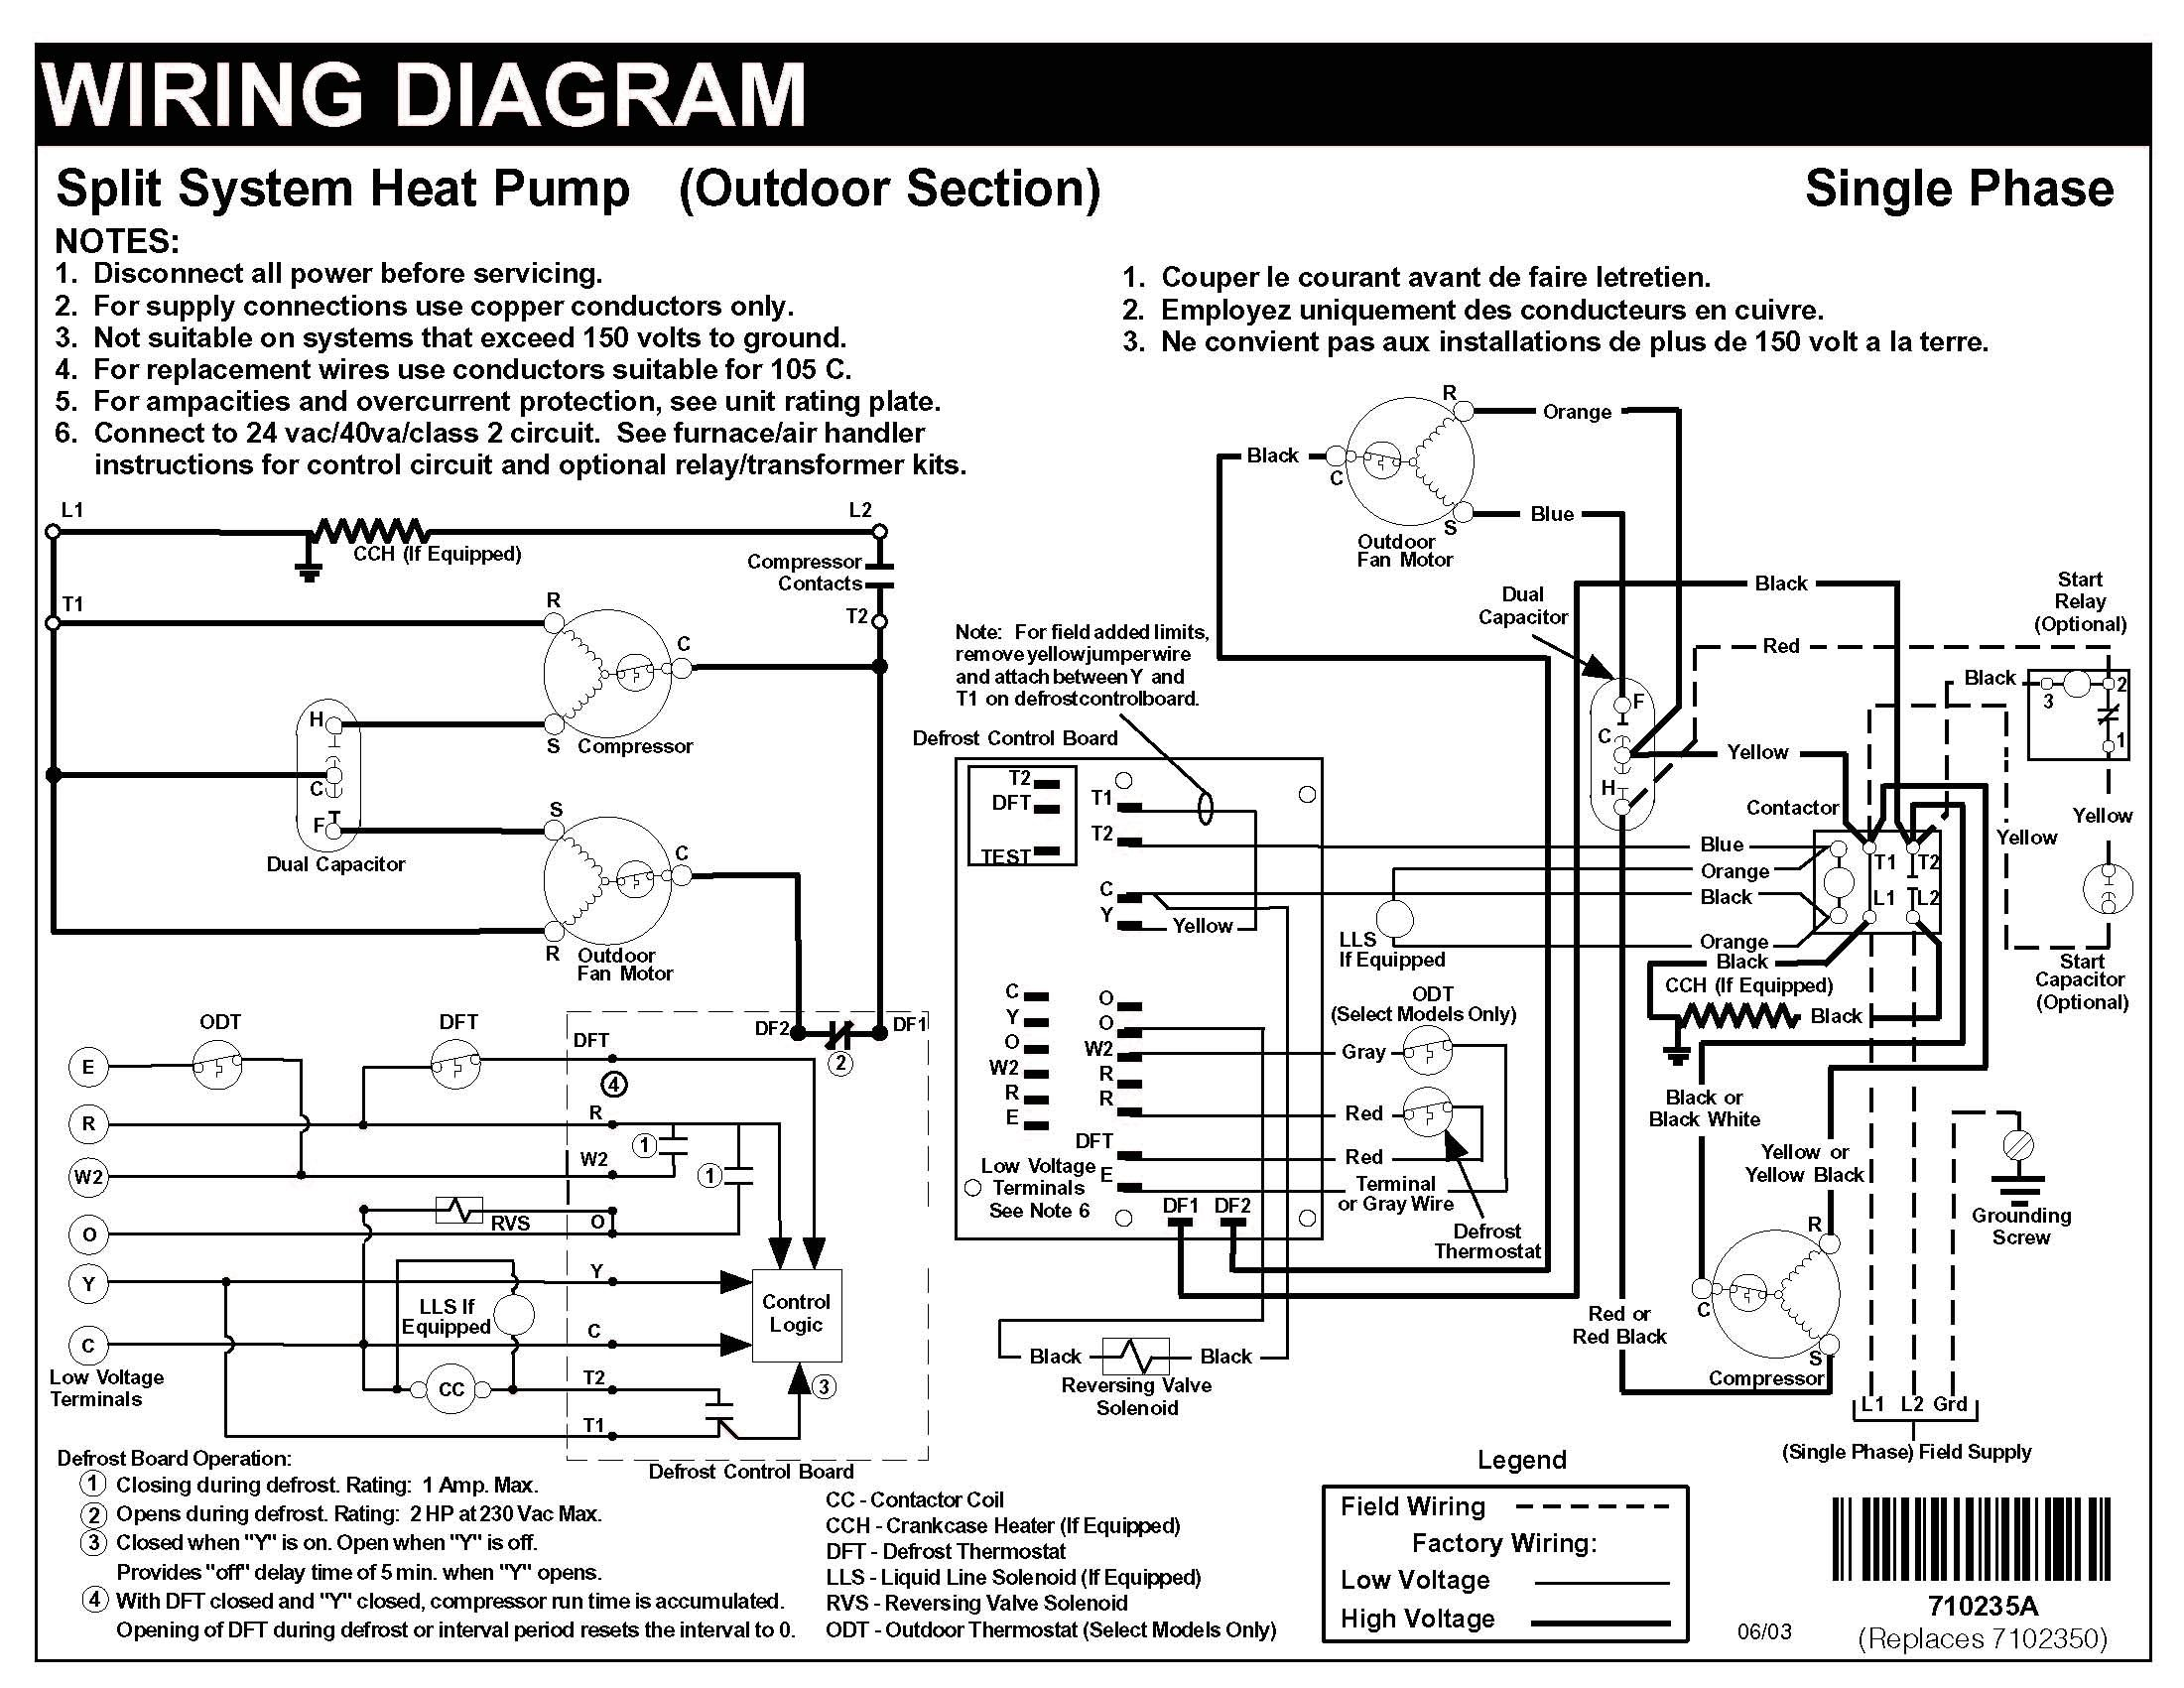 e08d295e6be2ee8be1bef44ac29add79 heat pumps residential heat pumps heat pump ratings lennox wiring diagram for heat pump system at eliteediting.co